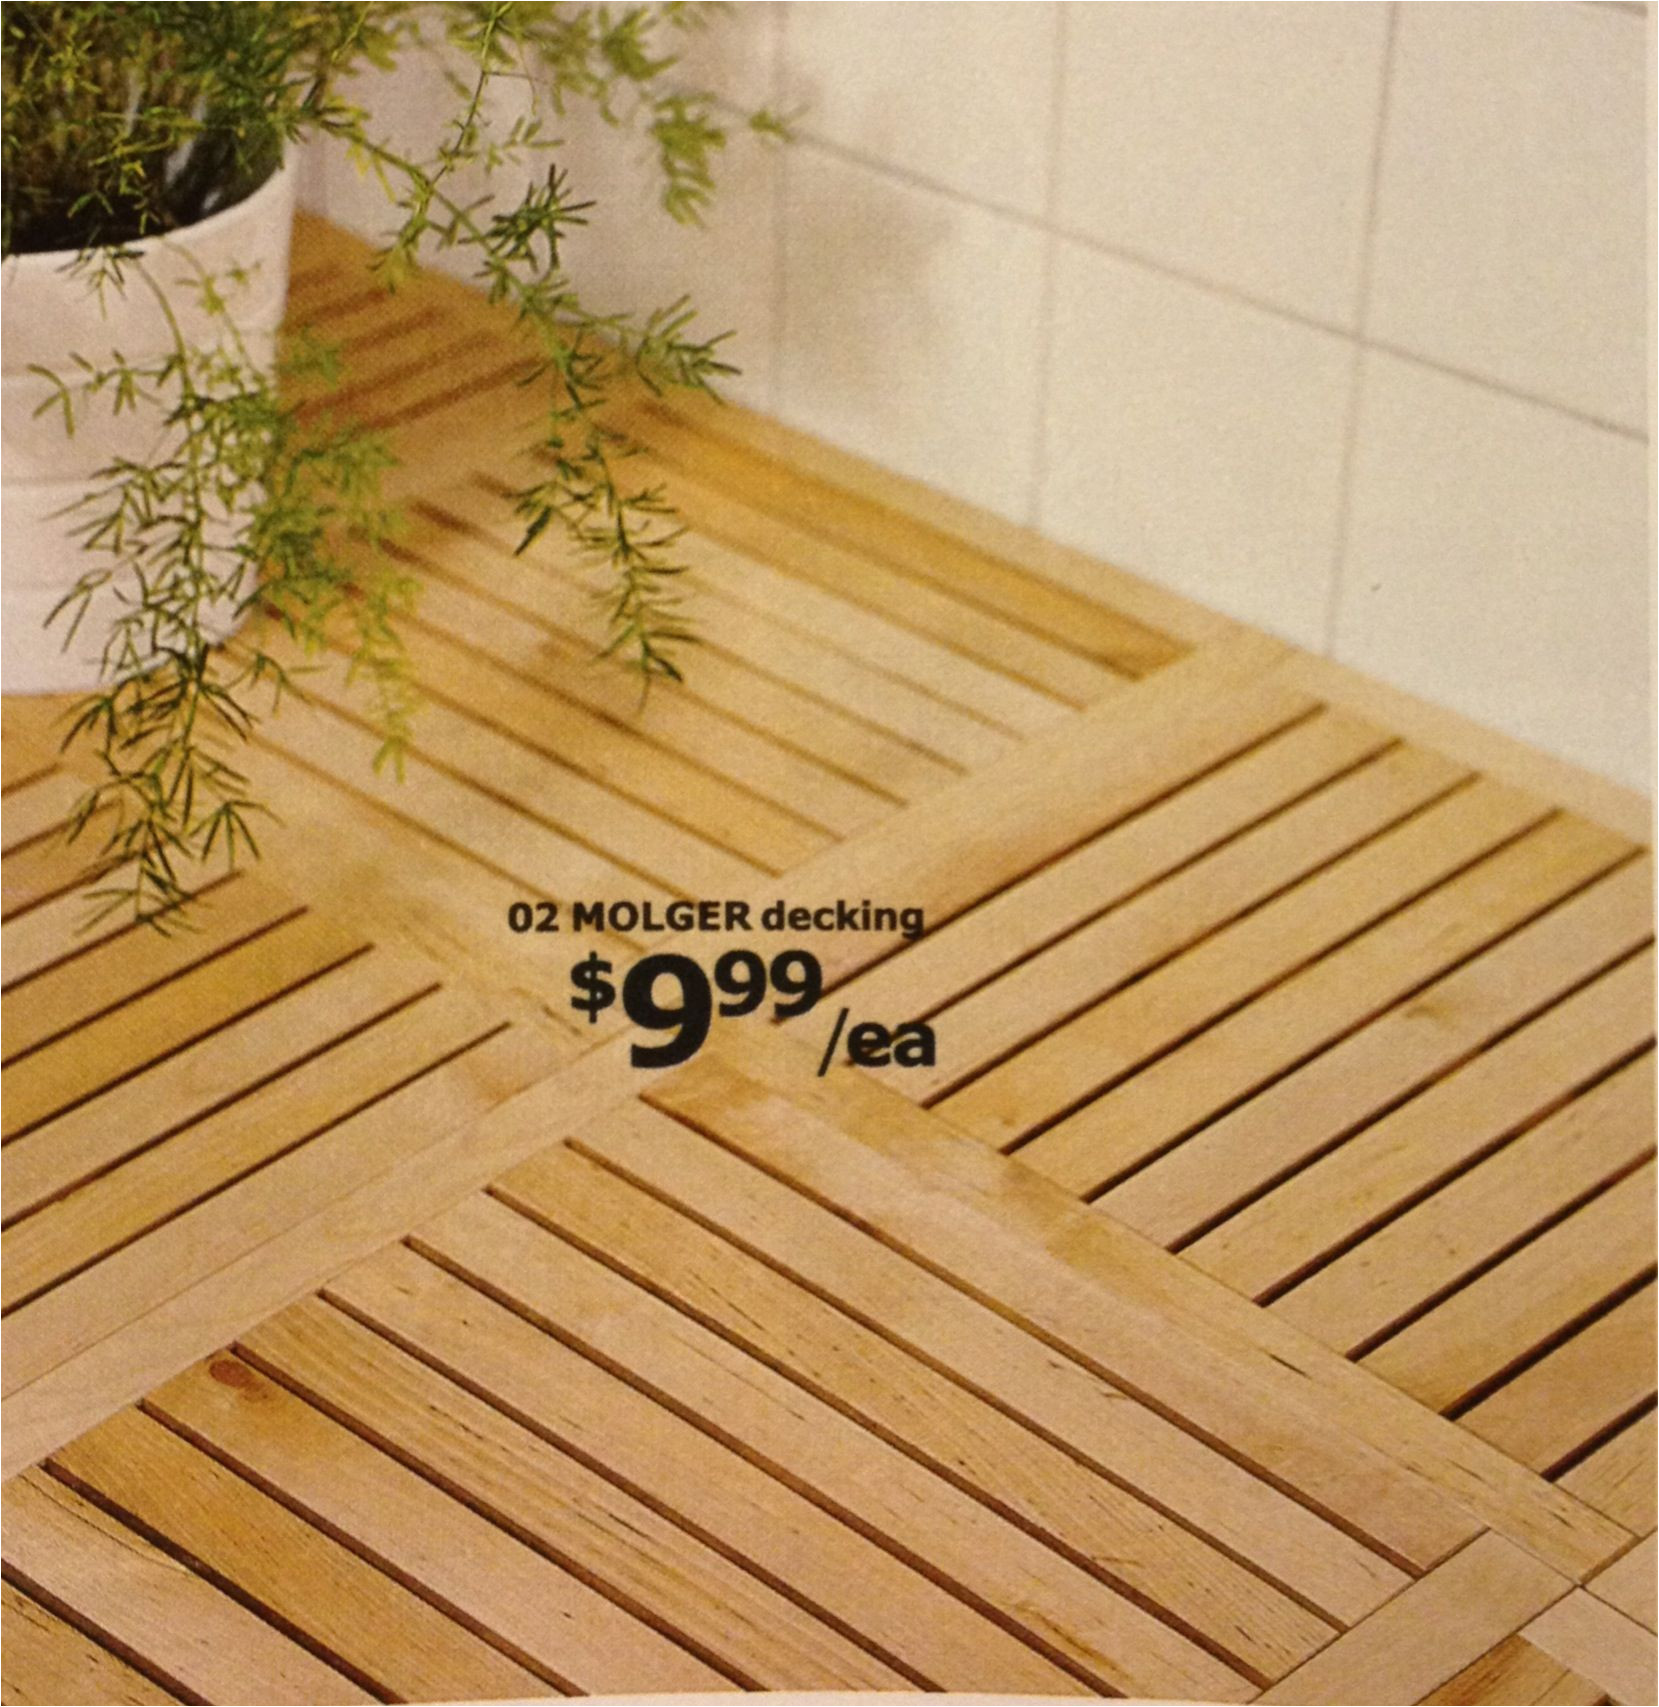 flooring installer salary molger decking shown in ikea catalog as flooring in a bath easy to